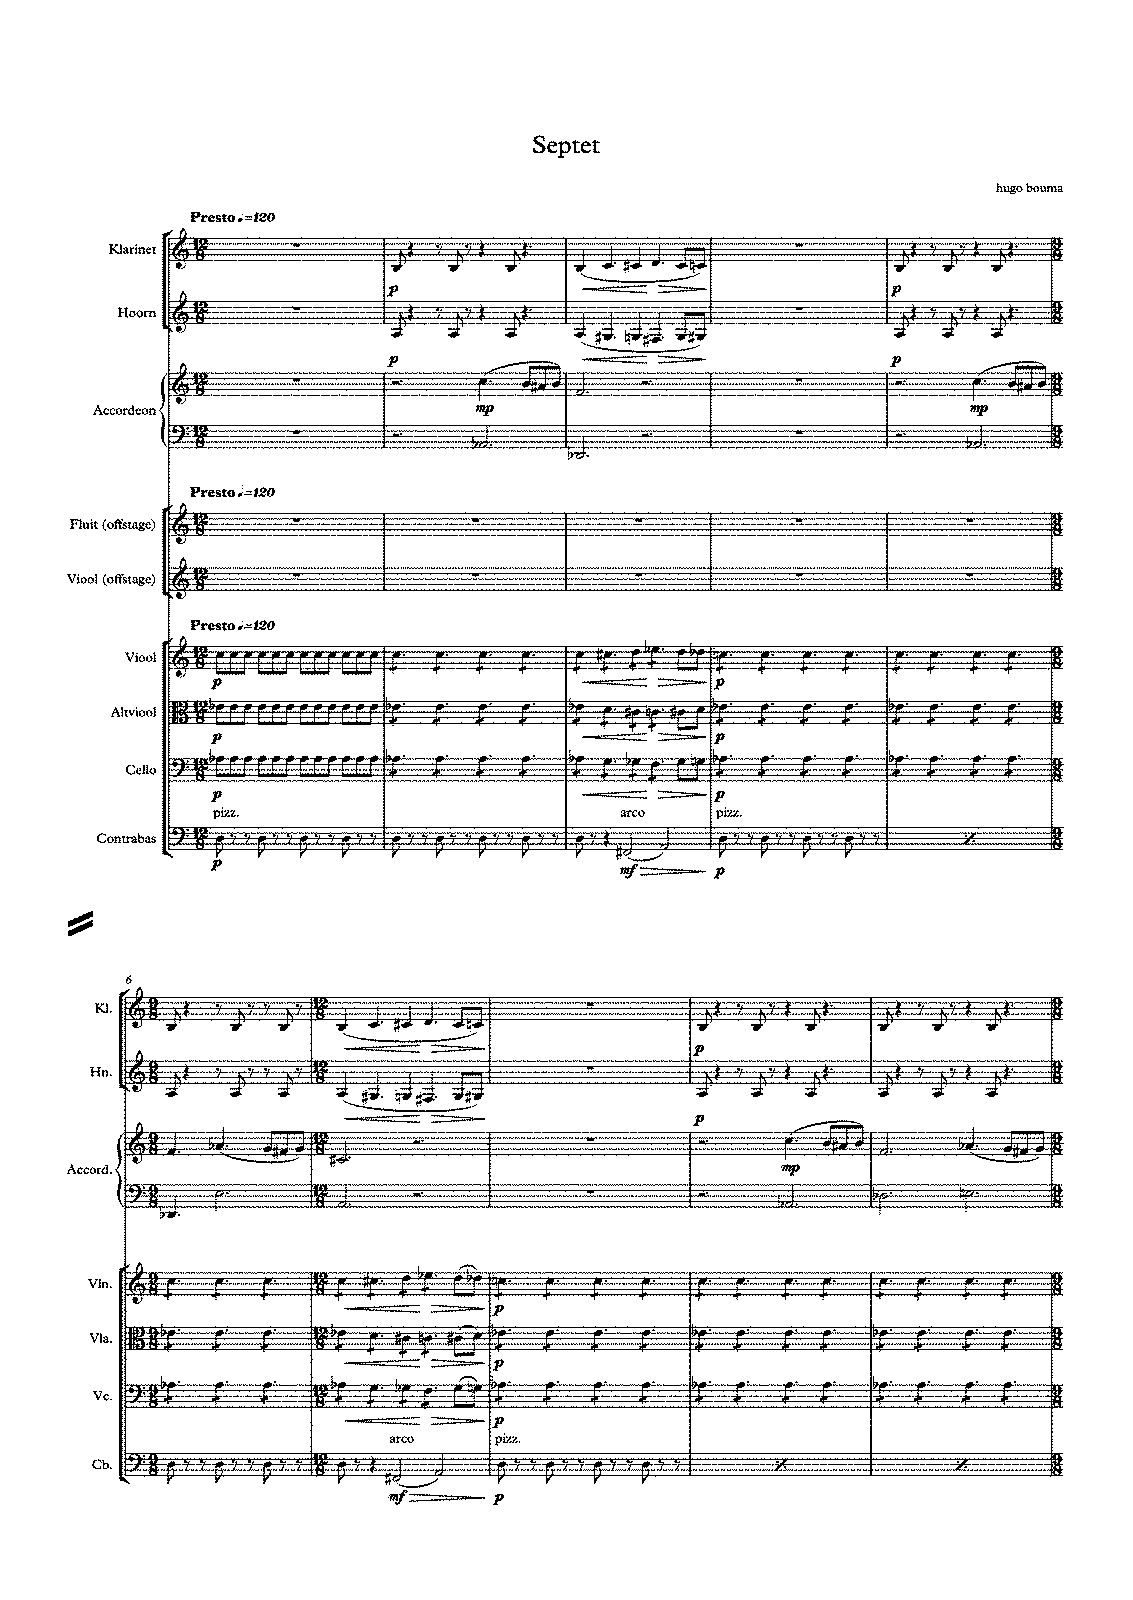 PMLP412736-Septet DEFINITIEF - Full Score klein.pdf